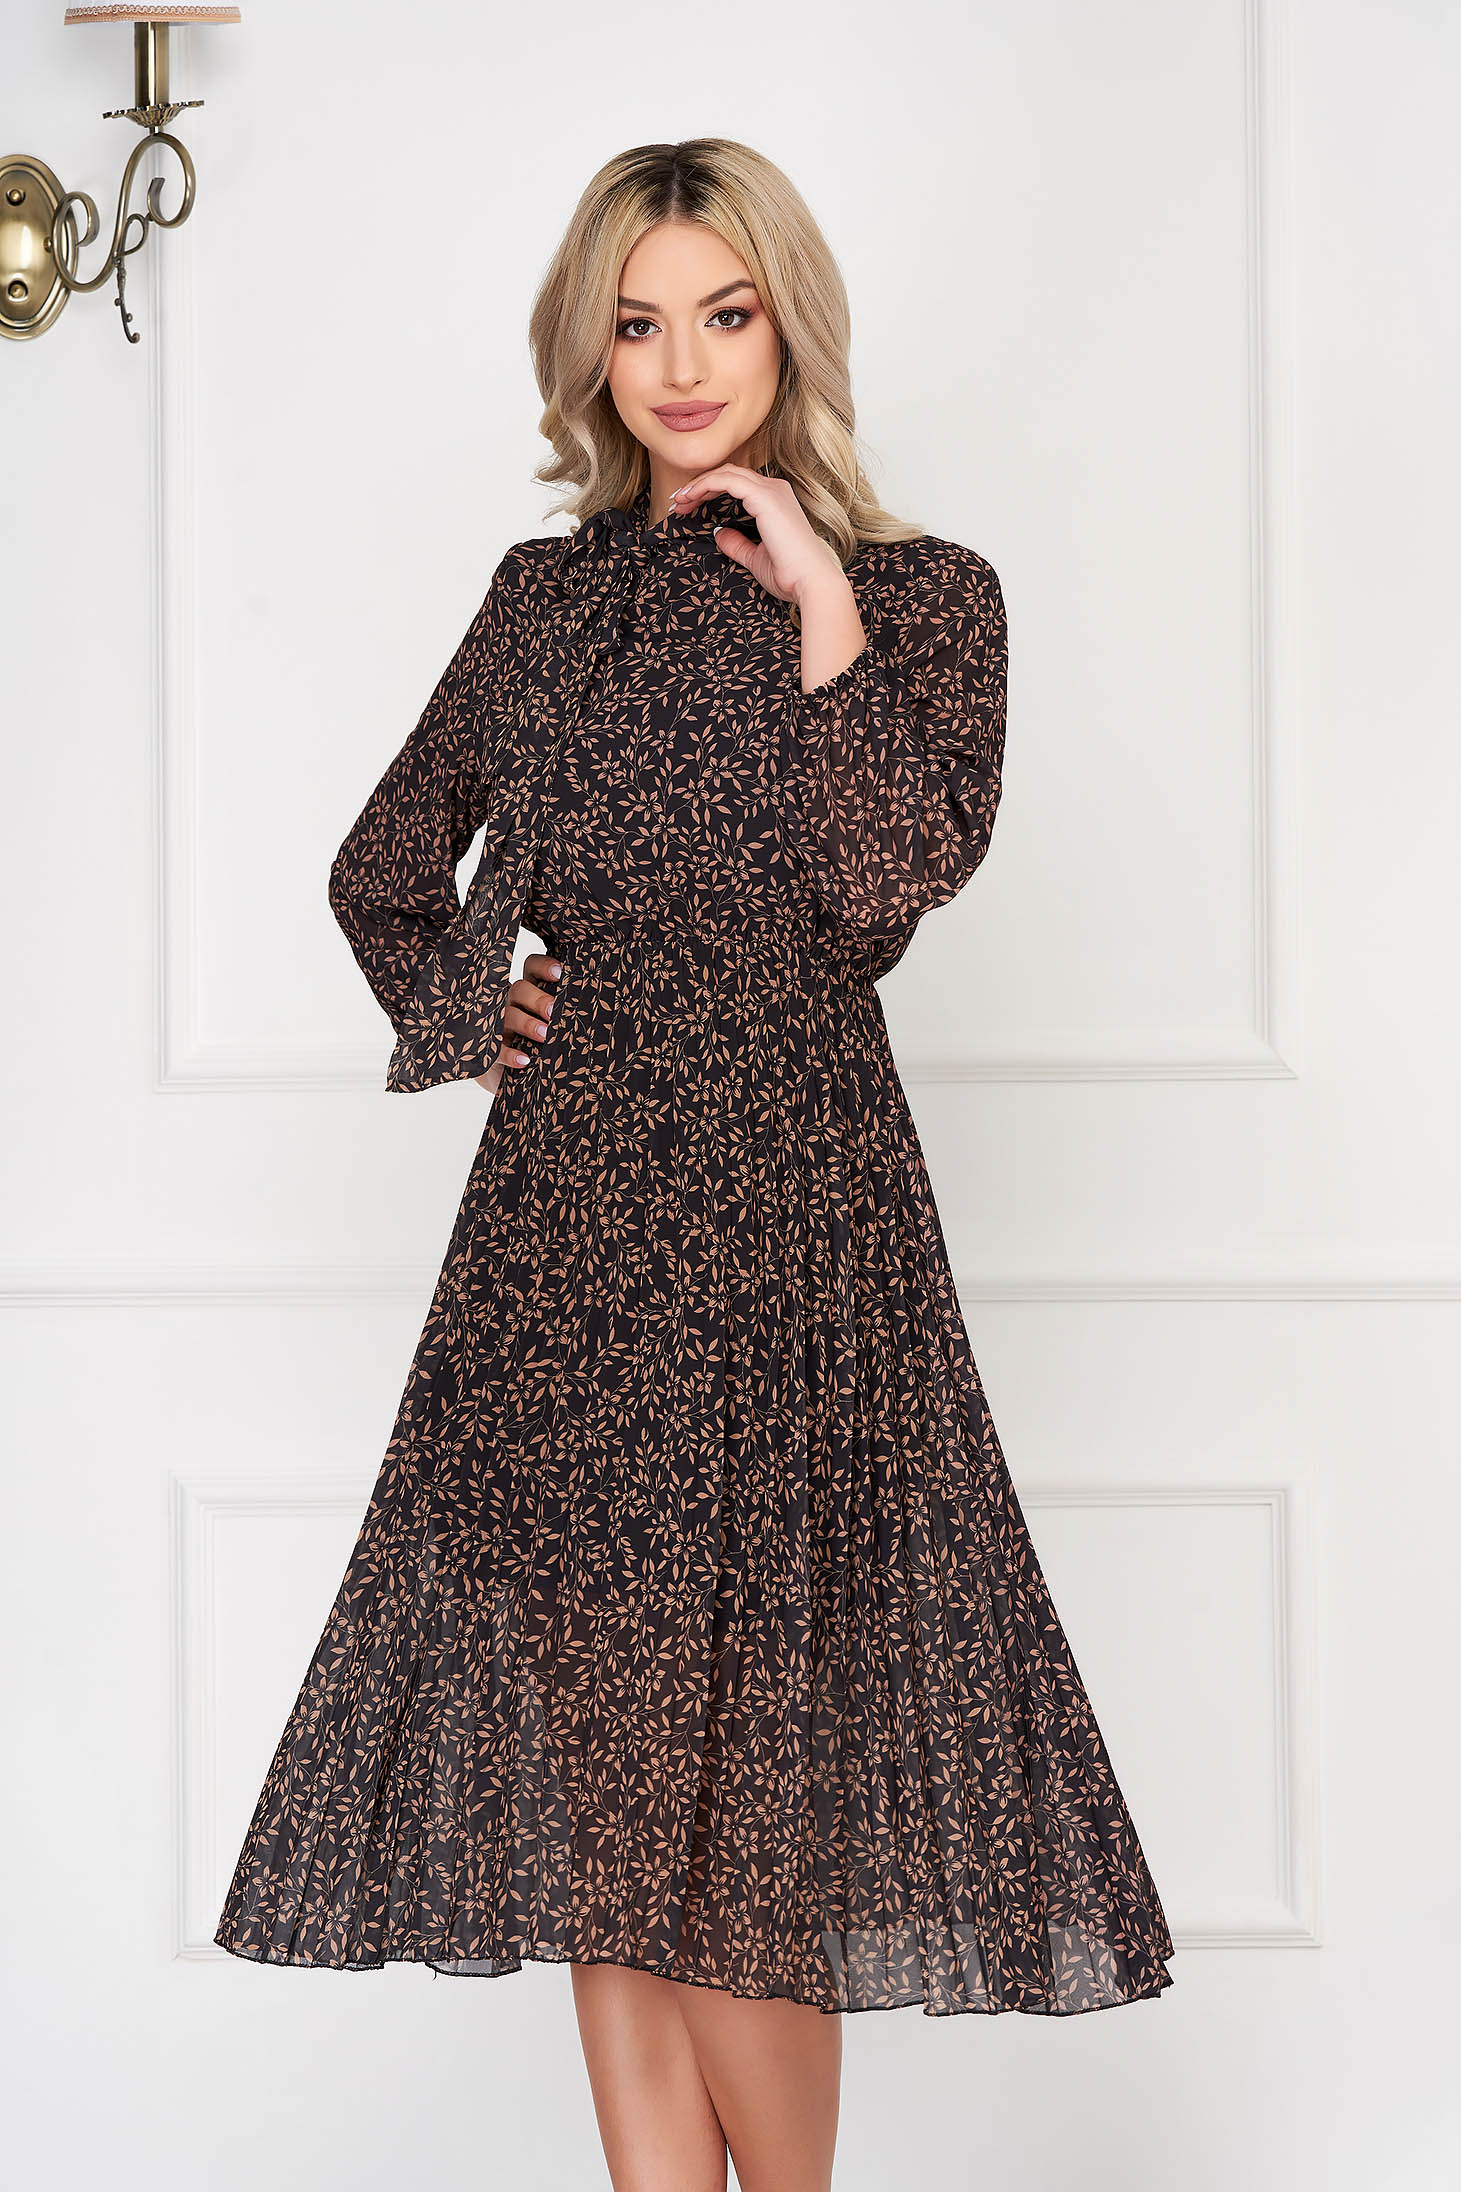 Brown dress long sleeved flaring cut pleats of material from veil elastic waist